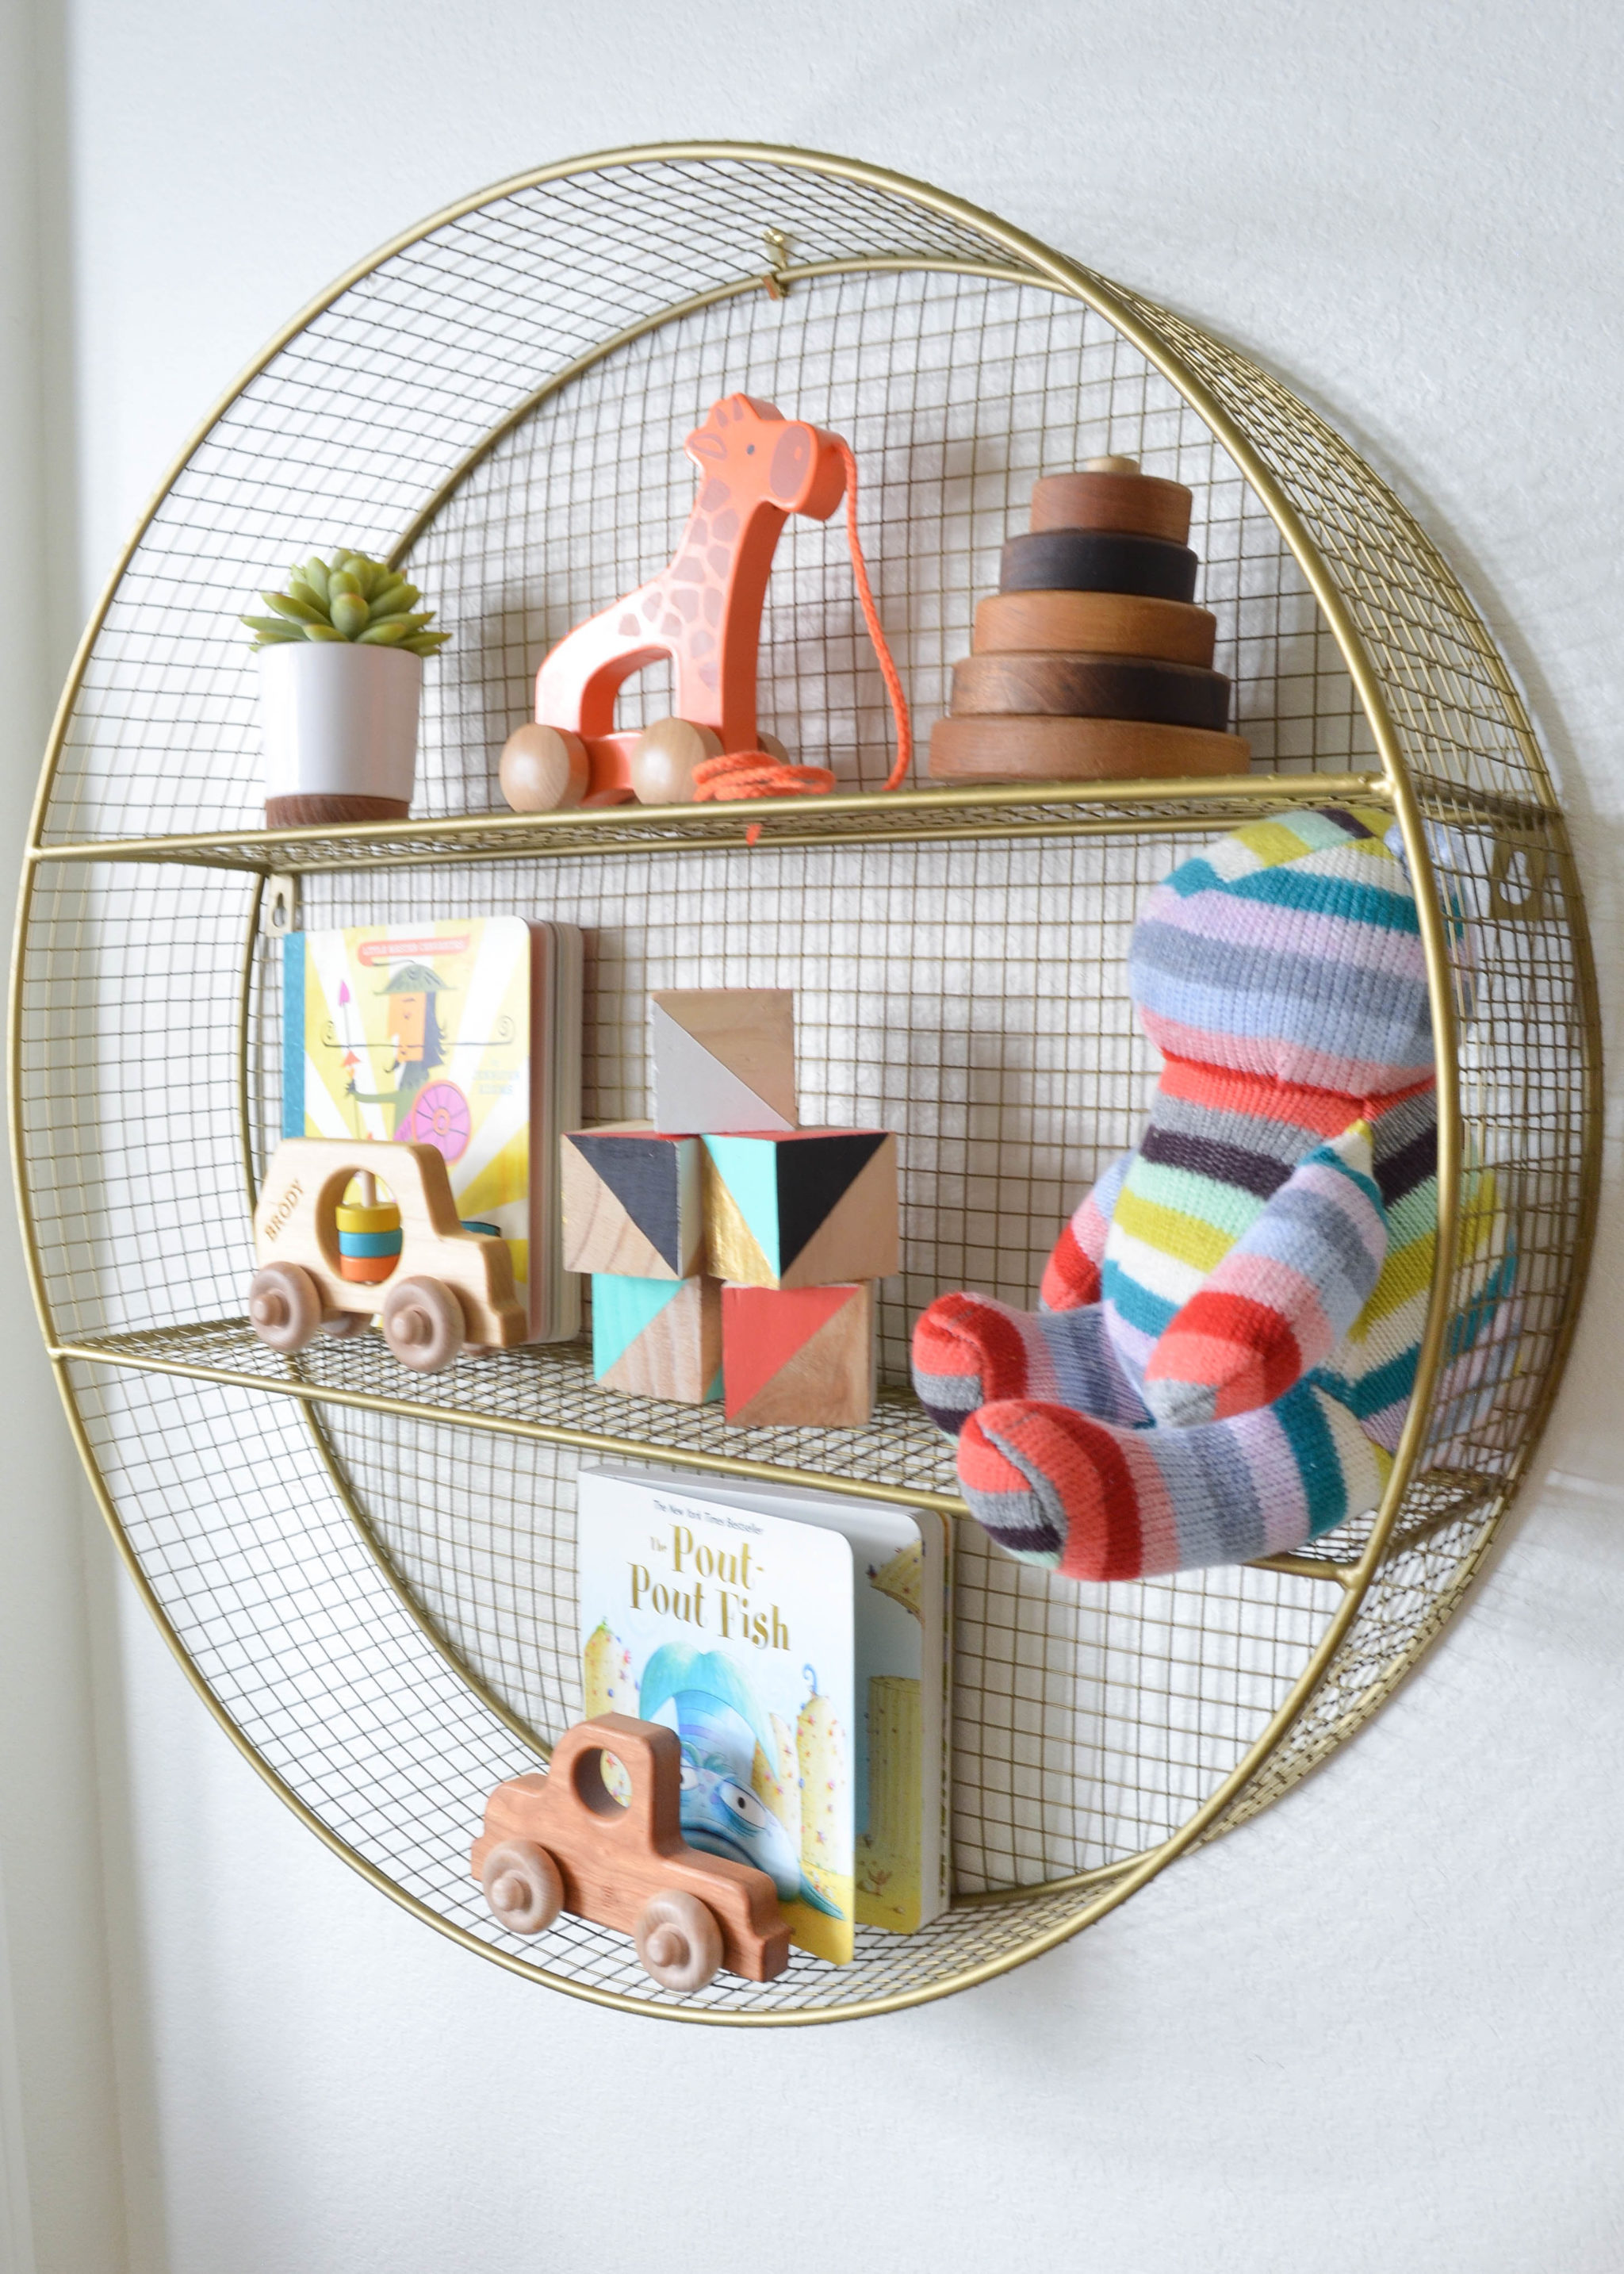 Toy Storage and Circular Display Shelf